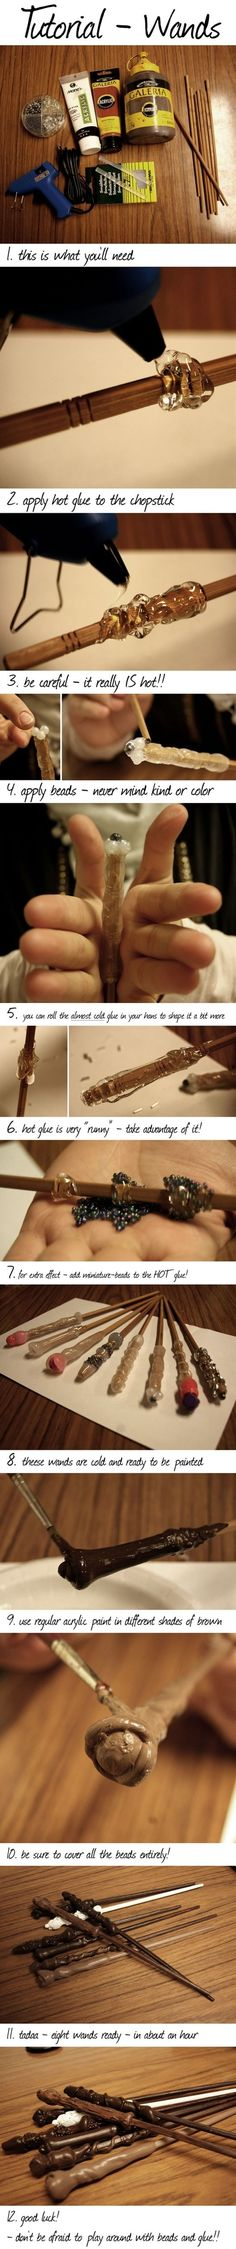 Wands - tutorial by *majann, coolest thing ive seen in a long long time